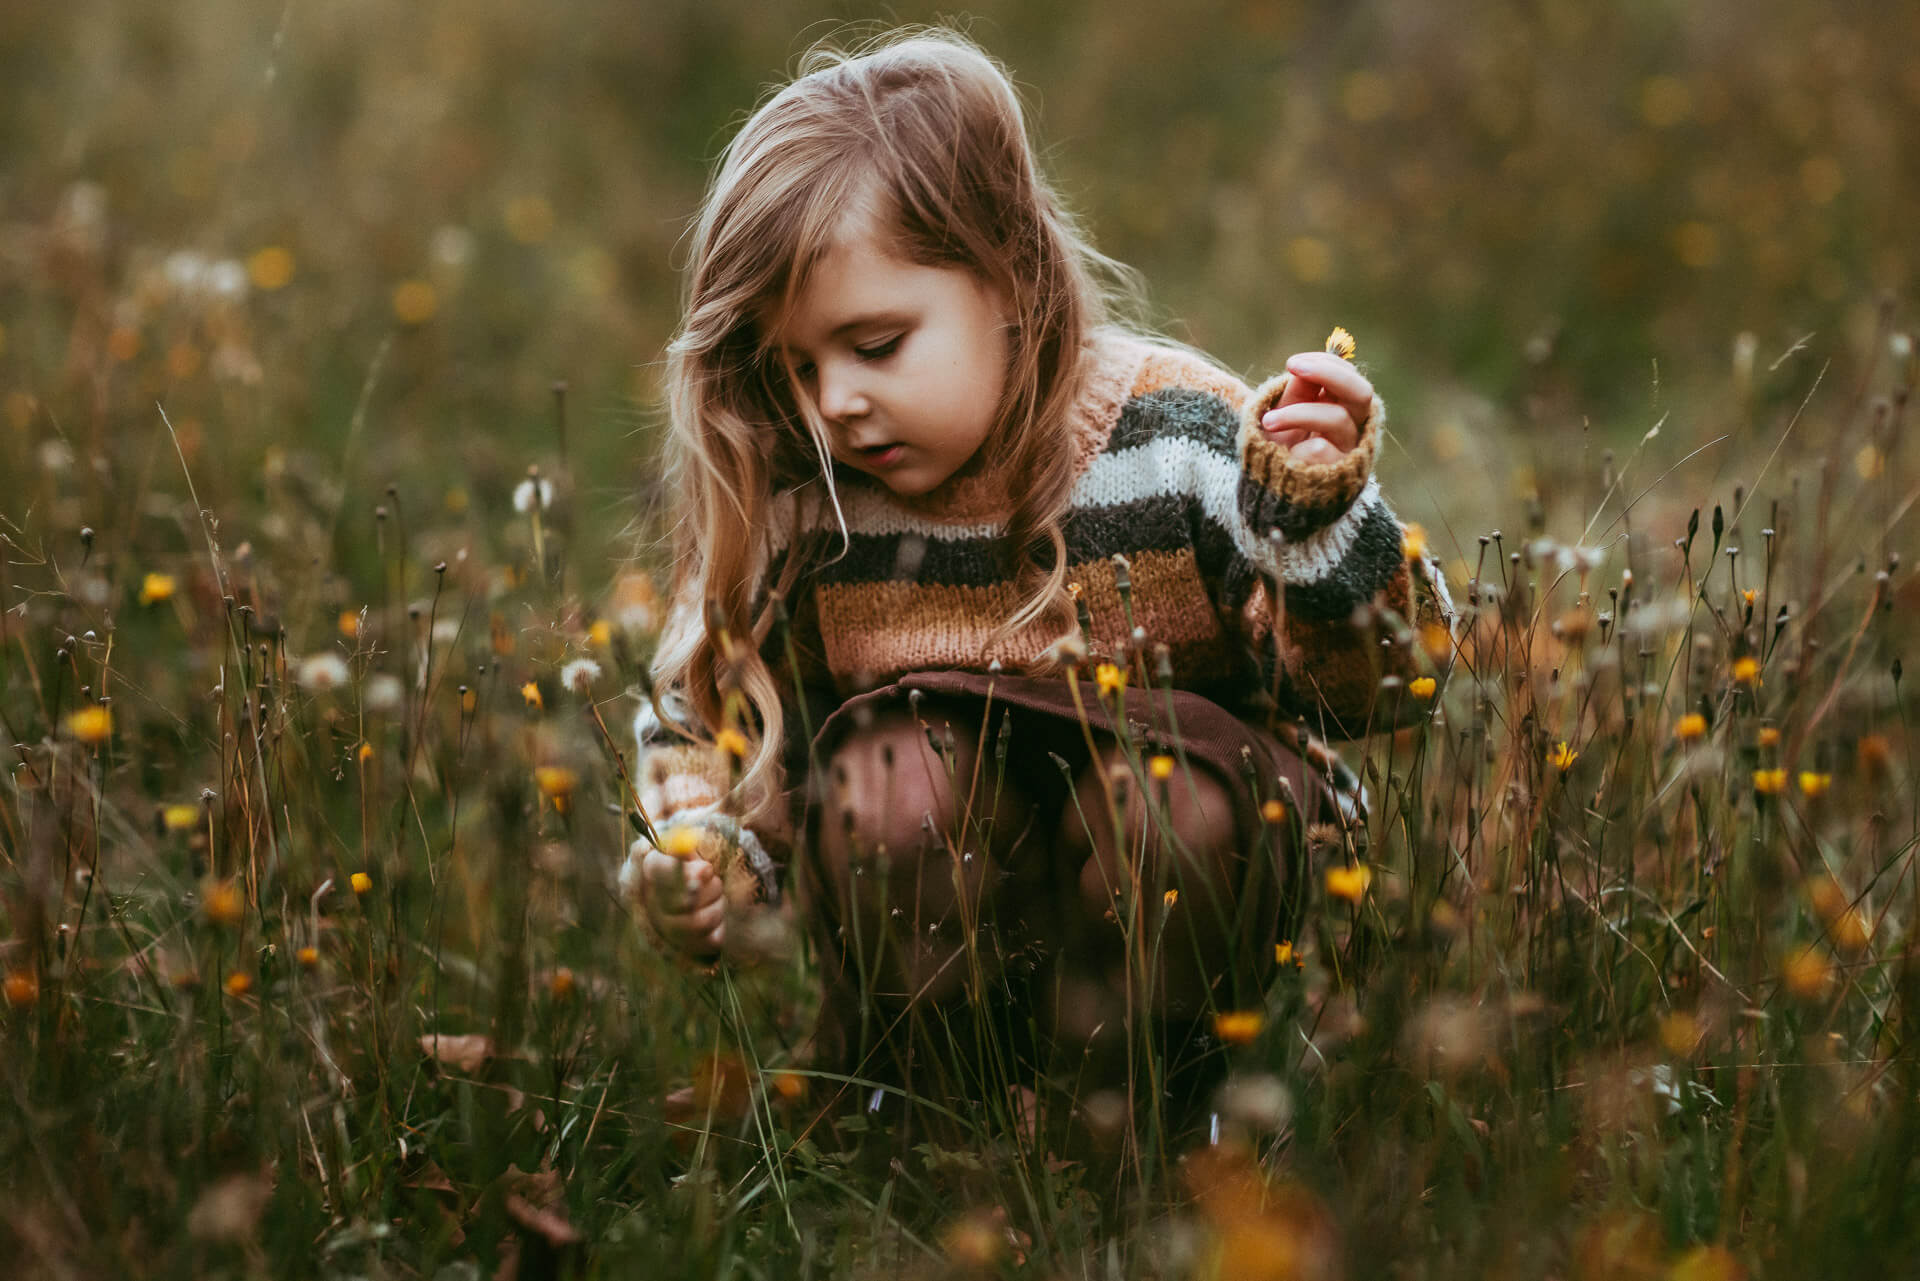 Little girl picking a flower in a Vermont field.